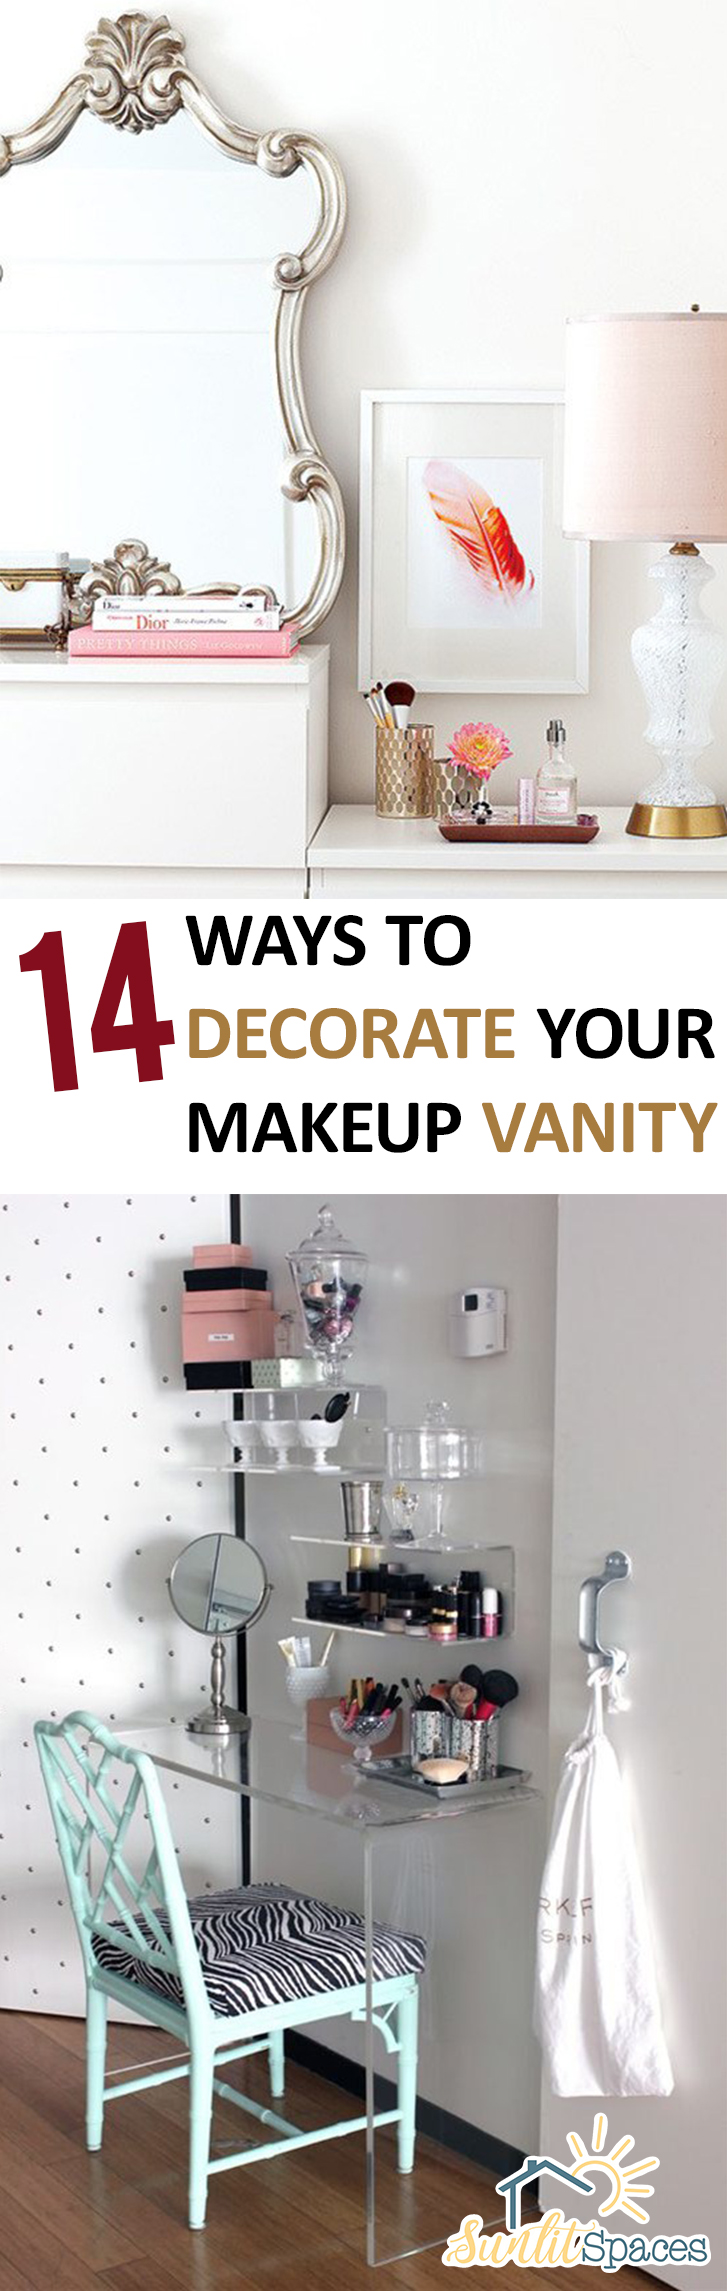 14 Ways To Decorate Your Makeup Vanity